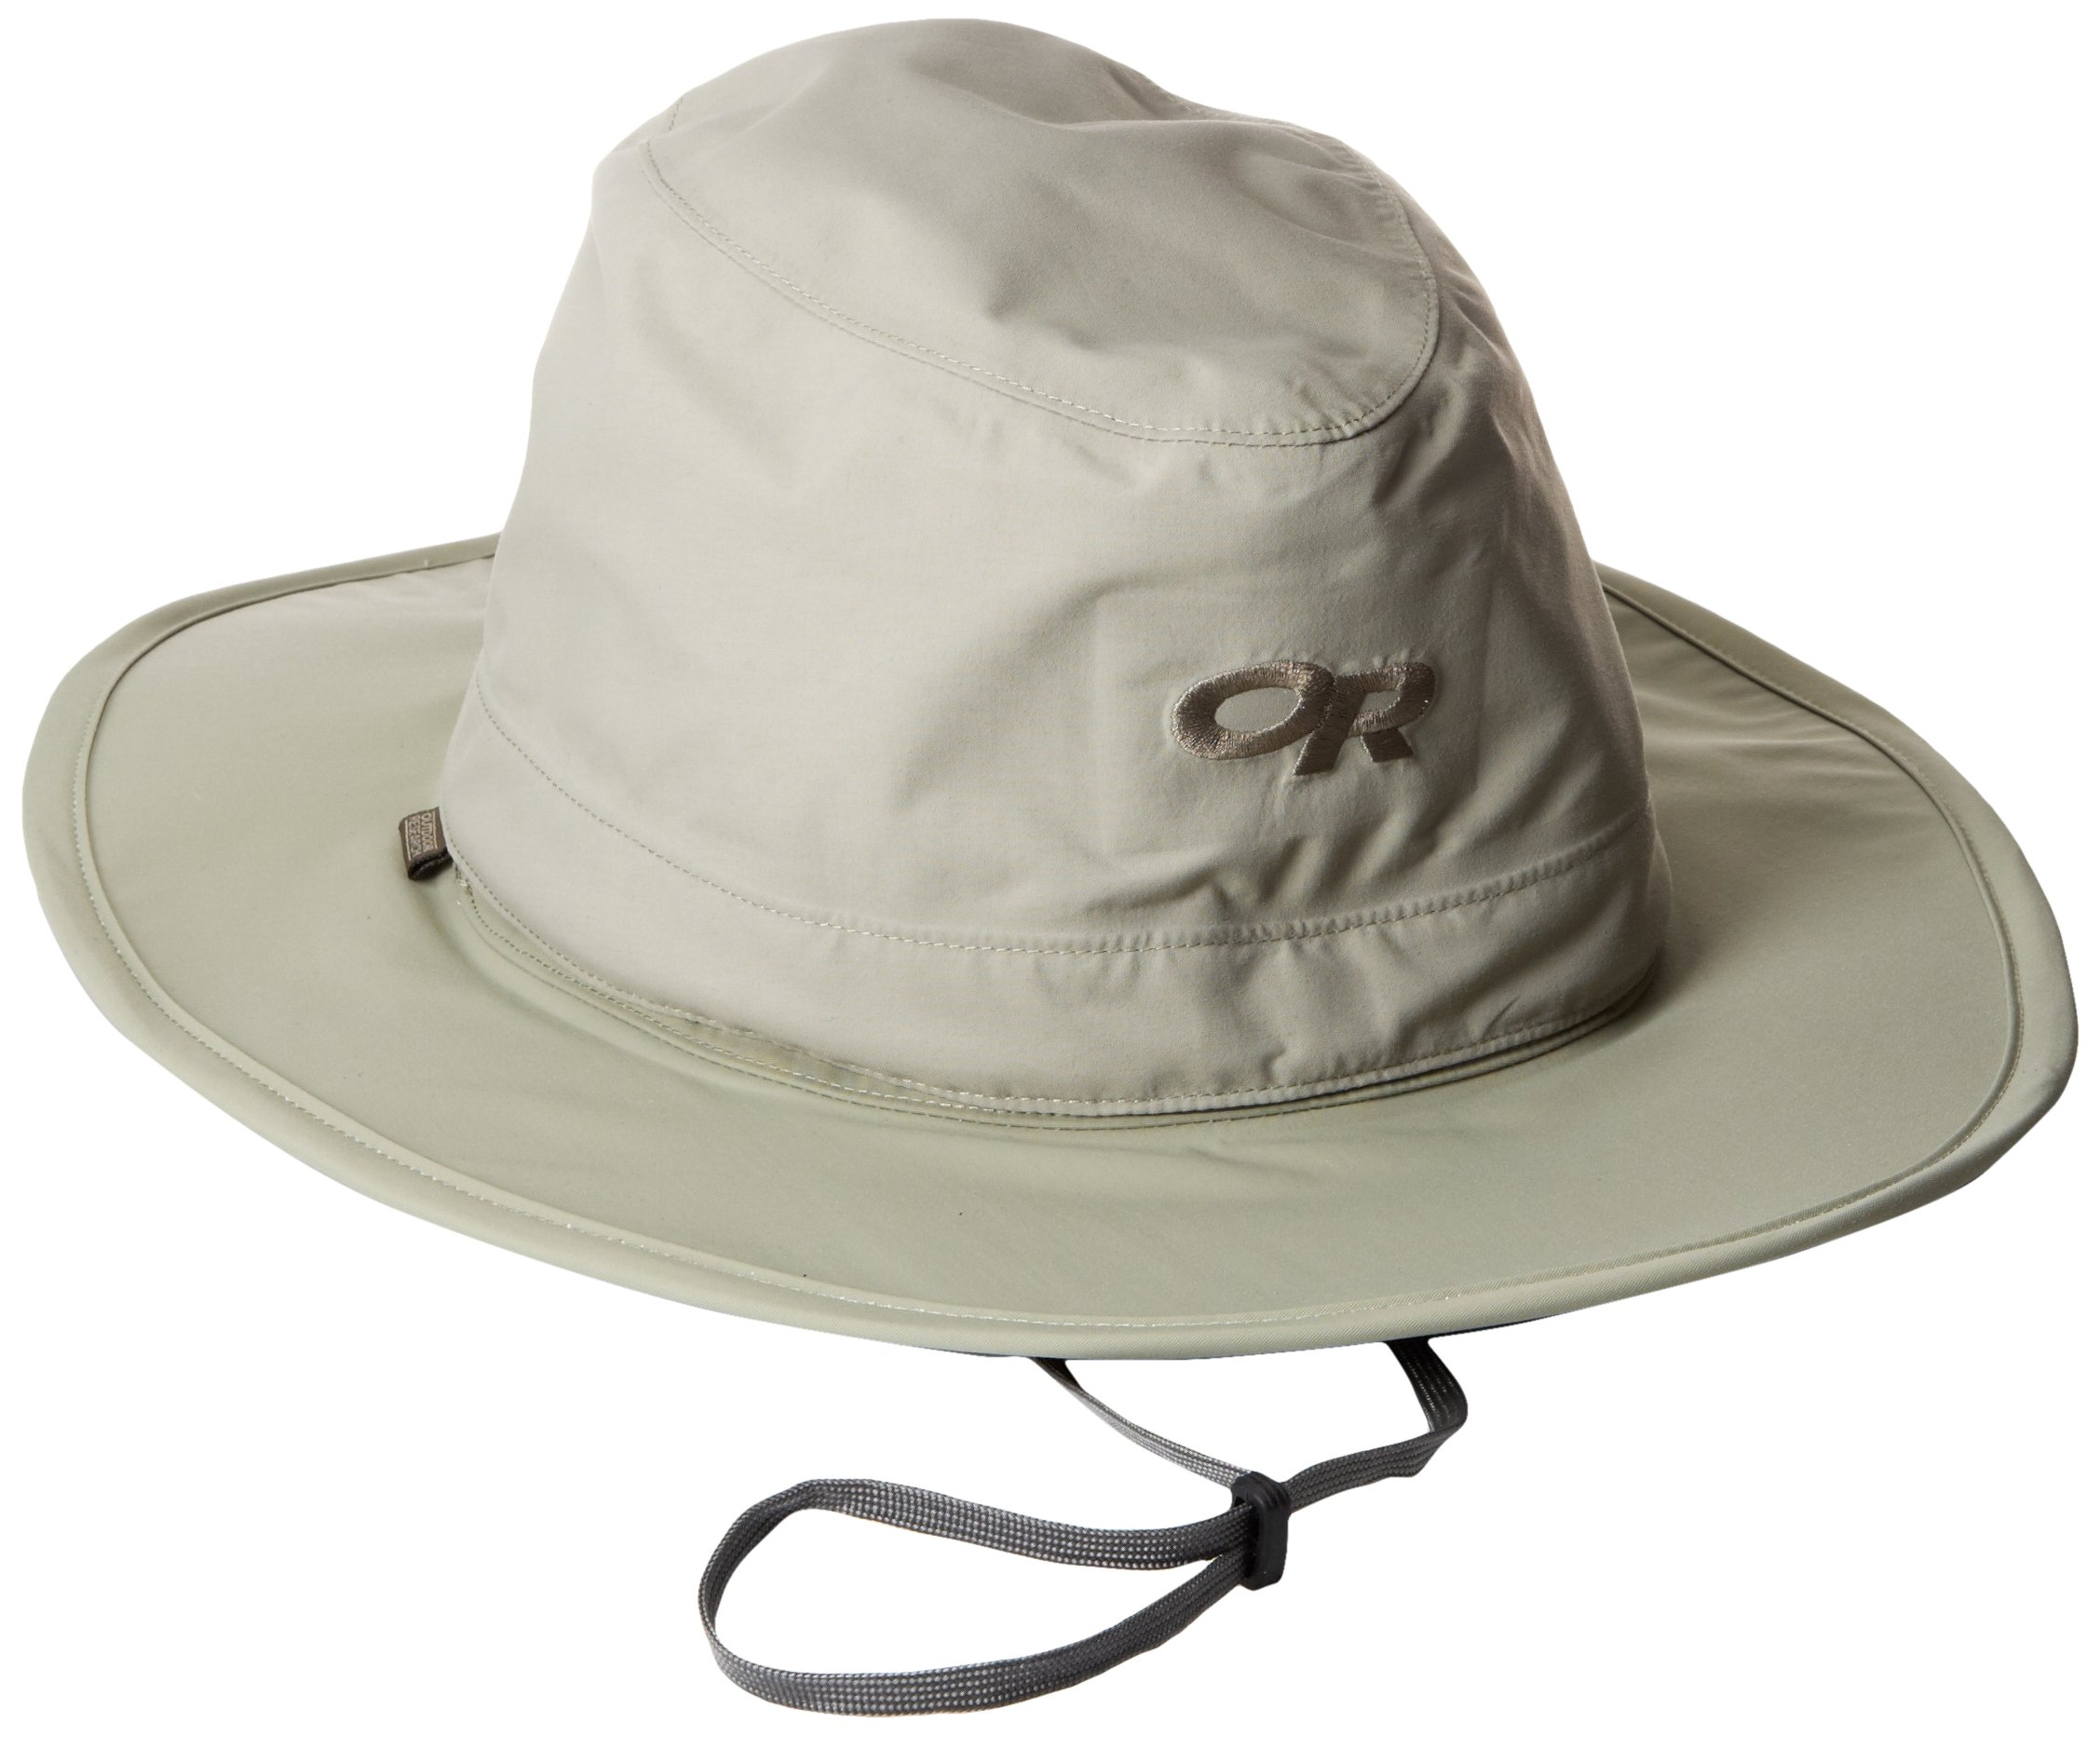 Outdoor Research Ghost Rain Hat, Khaki, Large